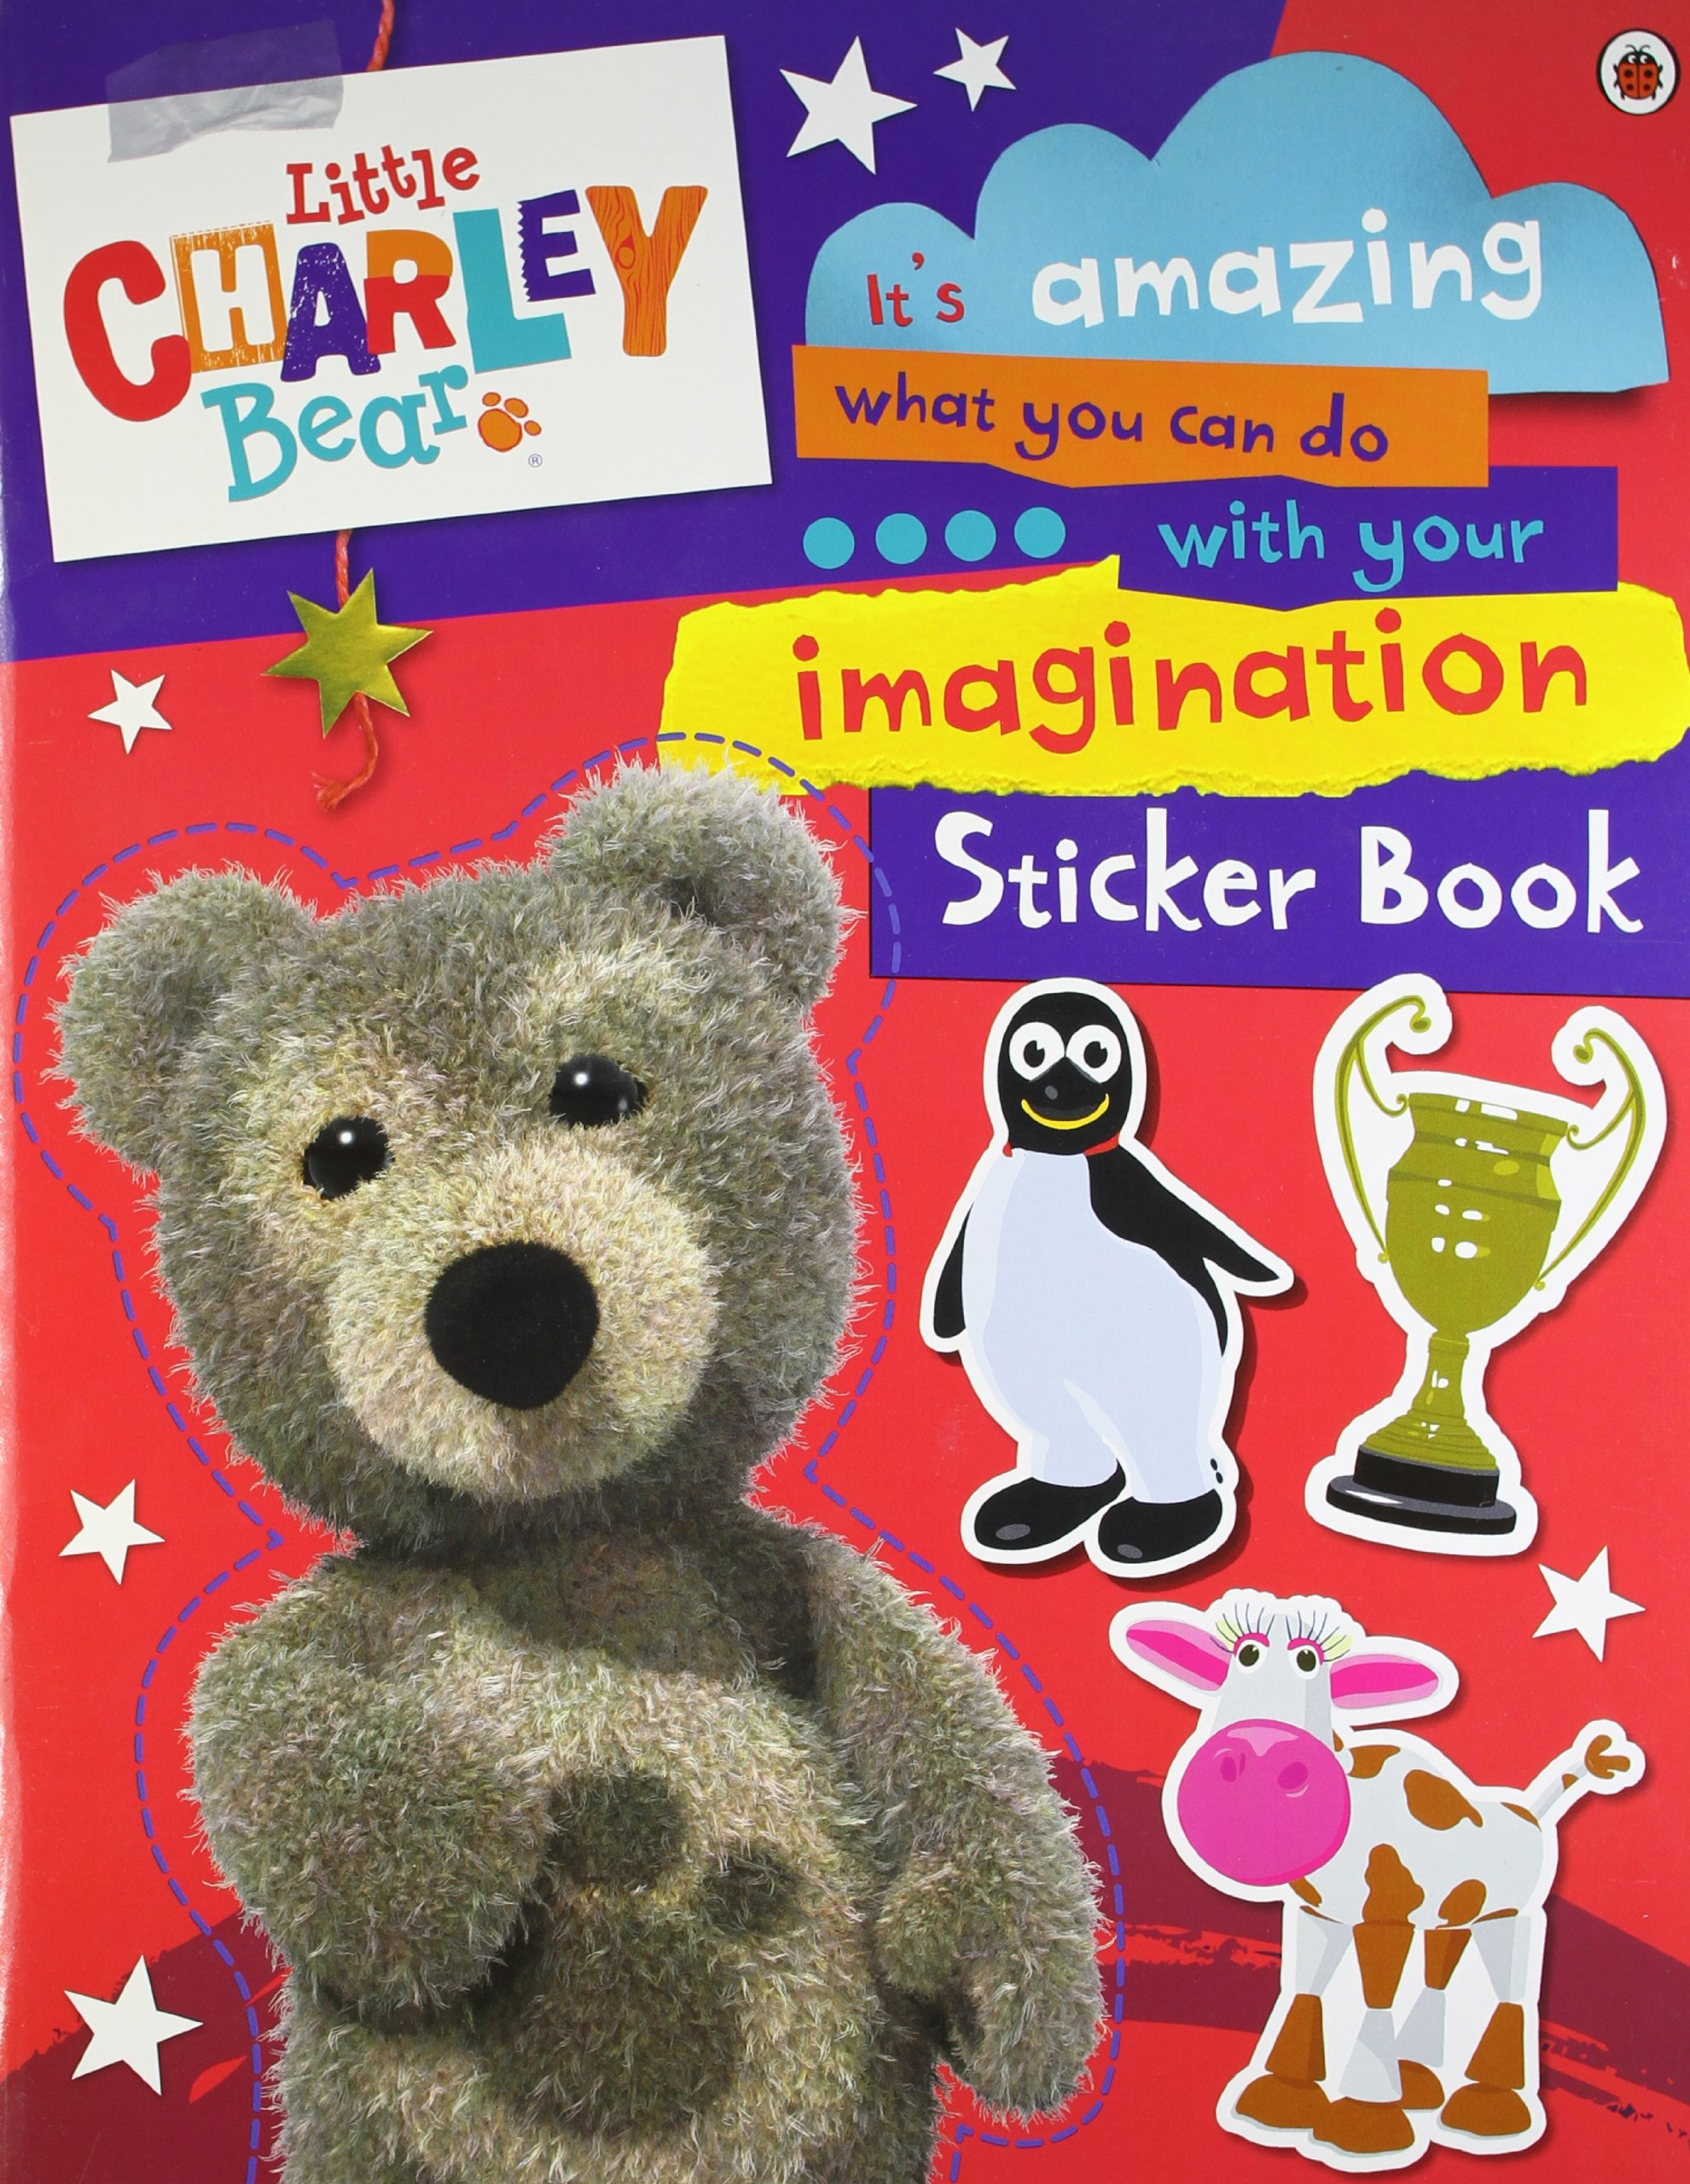 Little Charley Bear: It's Amazing What You Can Do With Your Imagination Sticker Book